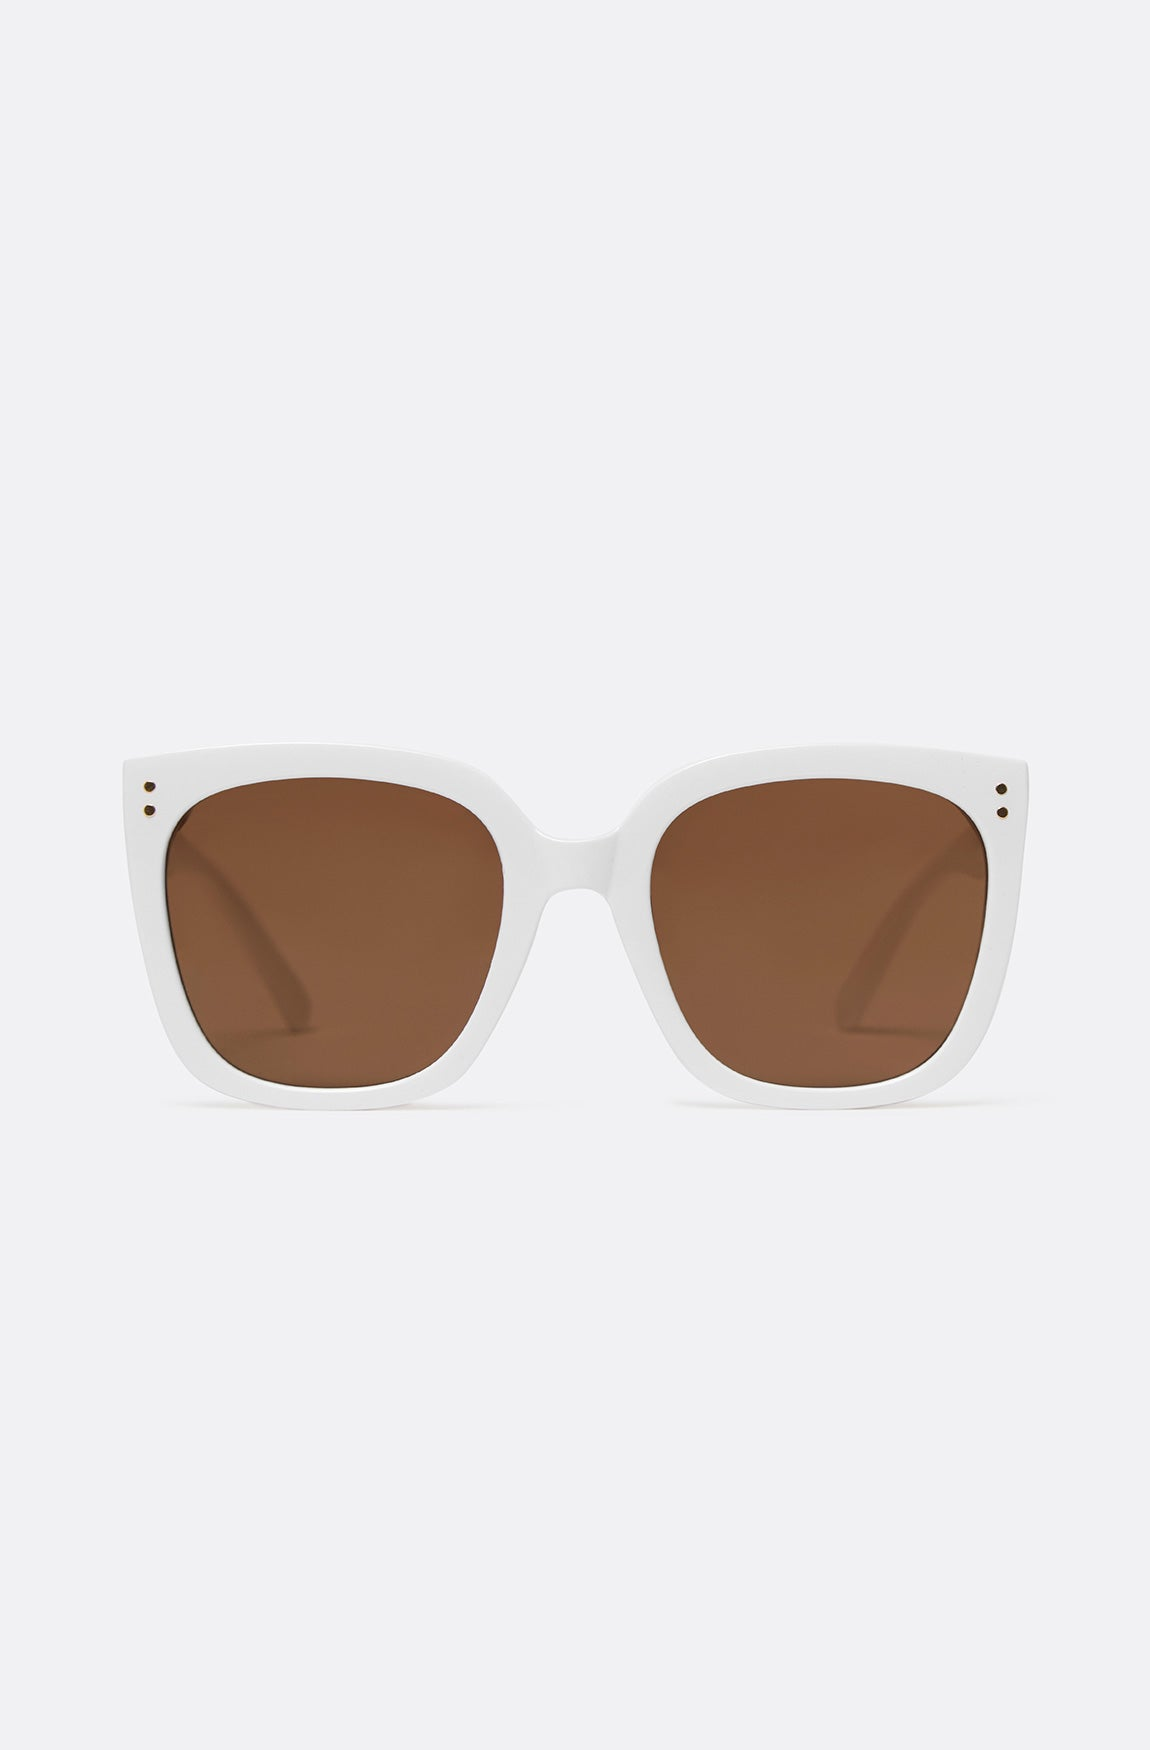 HAMPTONS SUNGLASSES